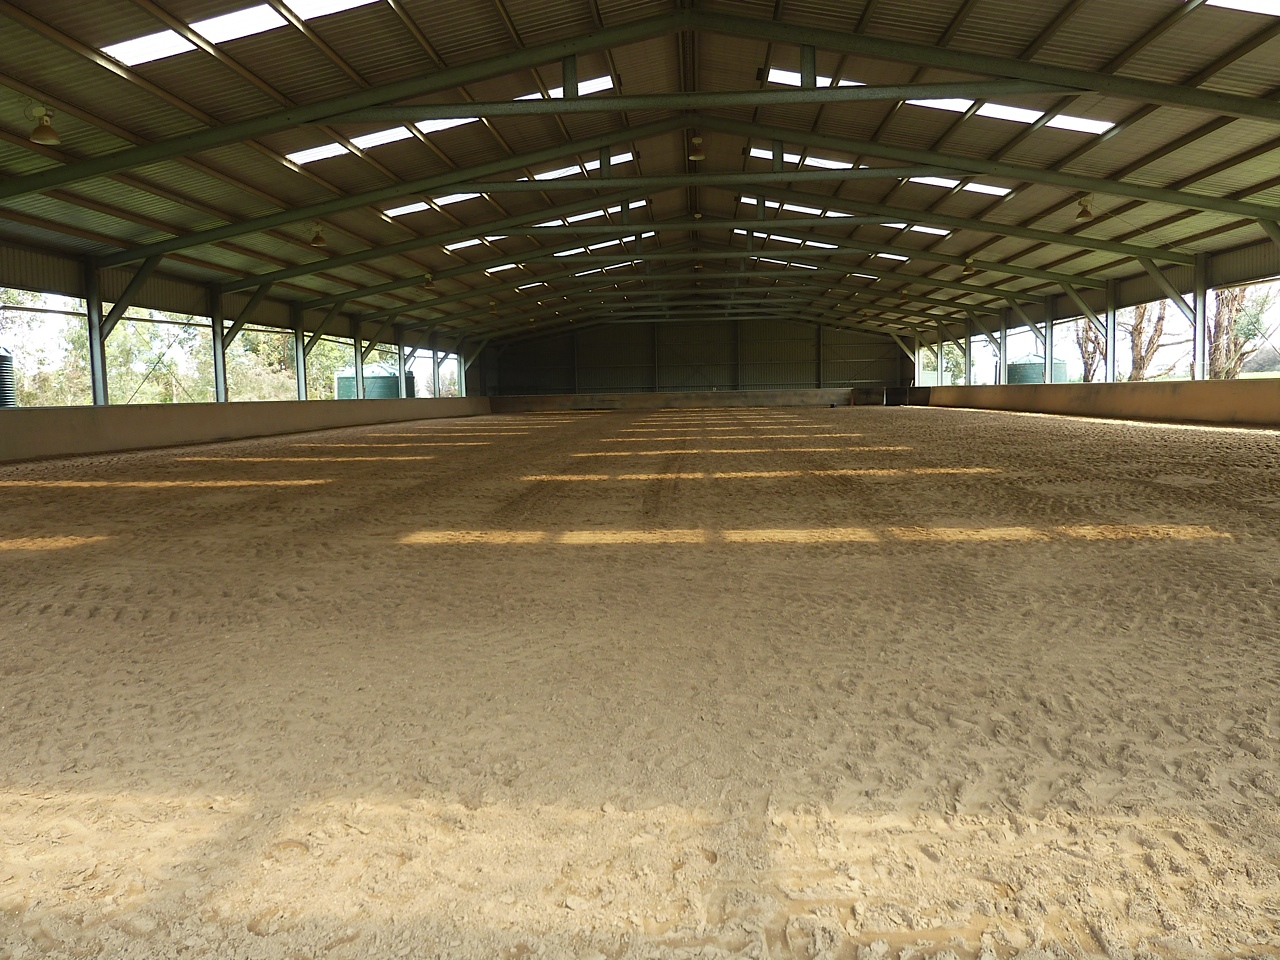 The Indoor Arena